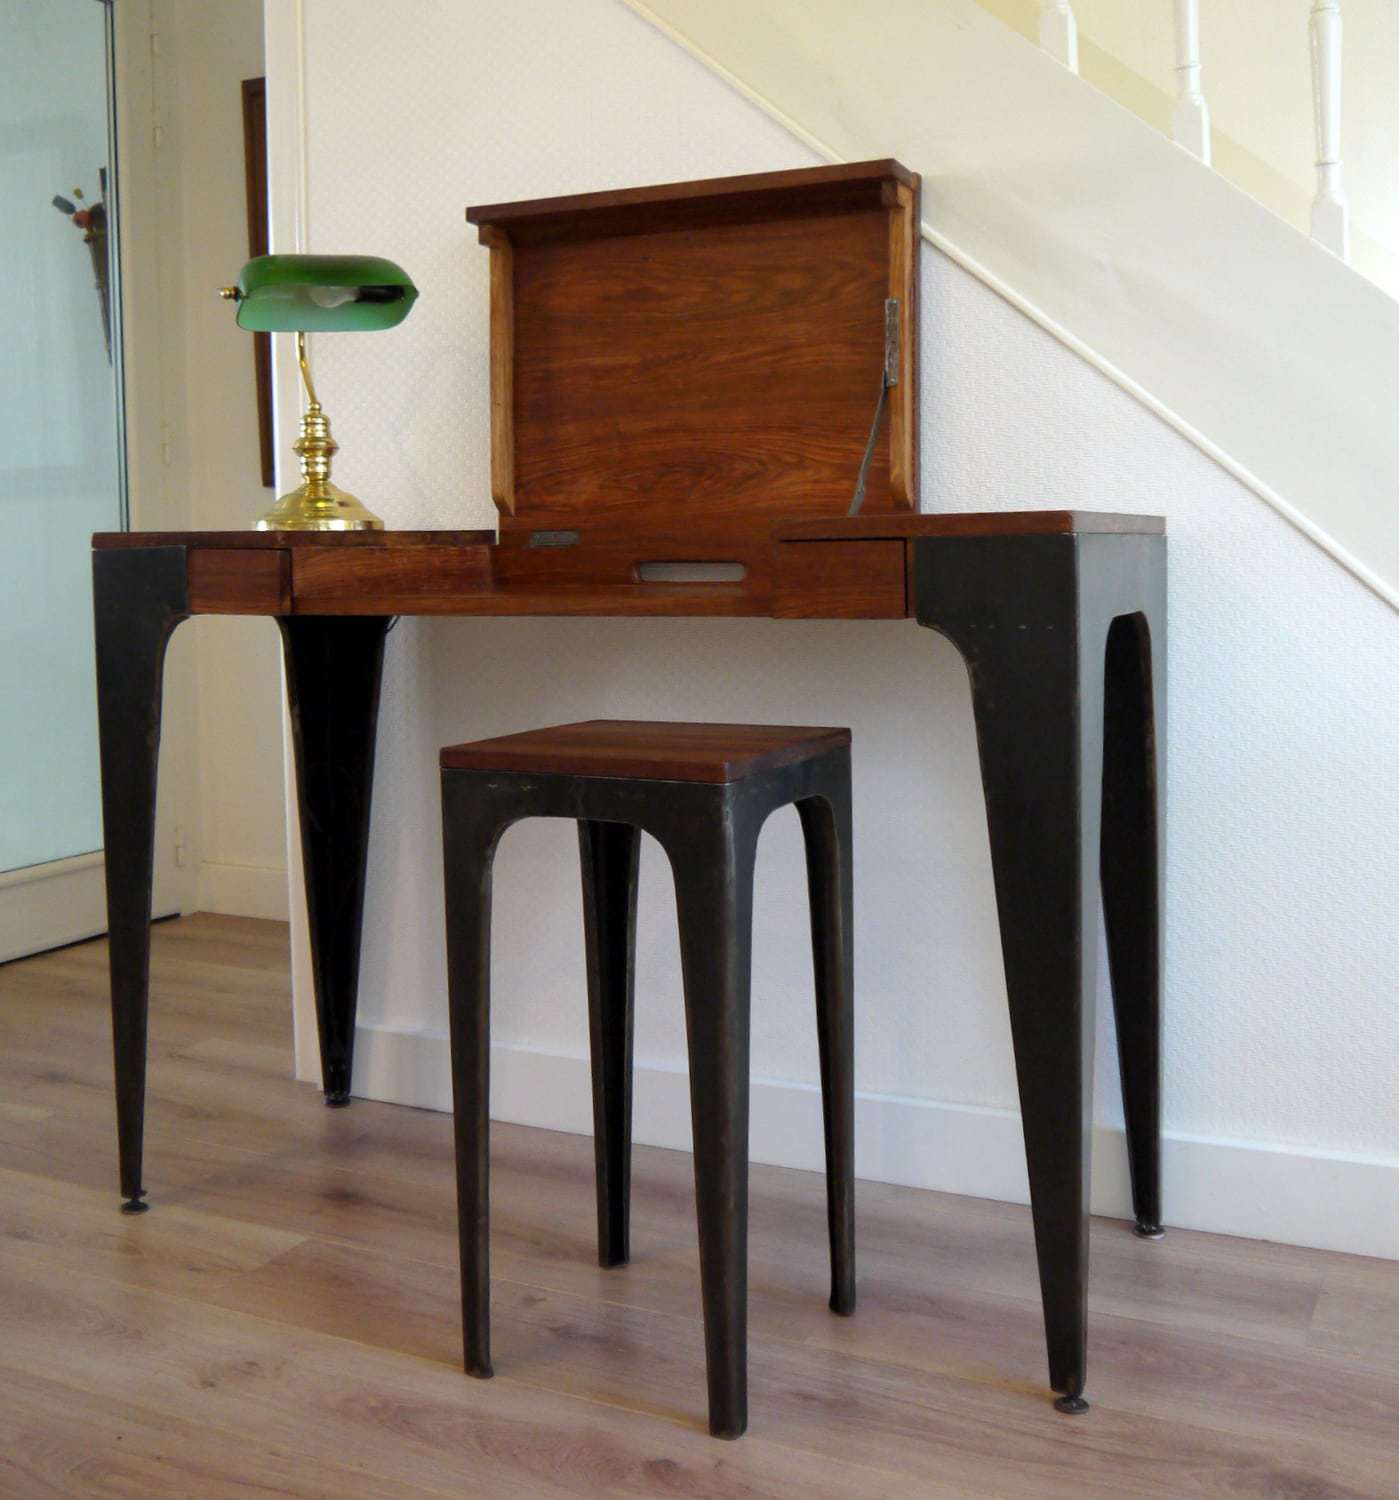 console de bureau gazelle en bois massif et t le brute africouleur. Black Bedroom Furniture Sets. Home Design Ideas